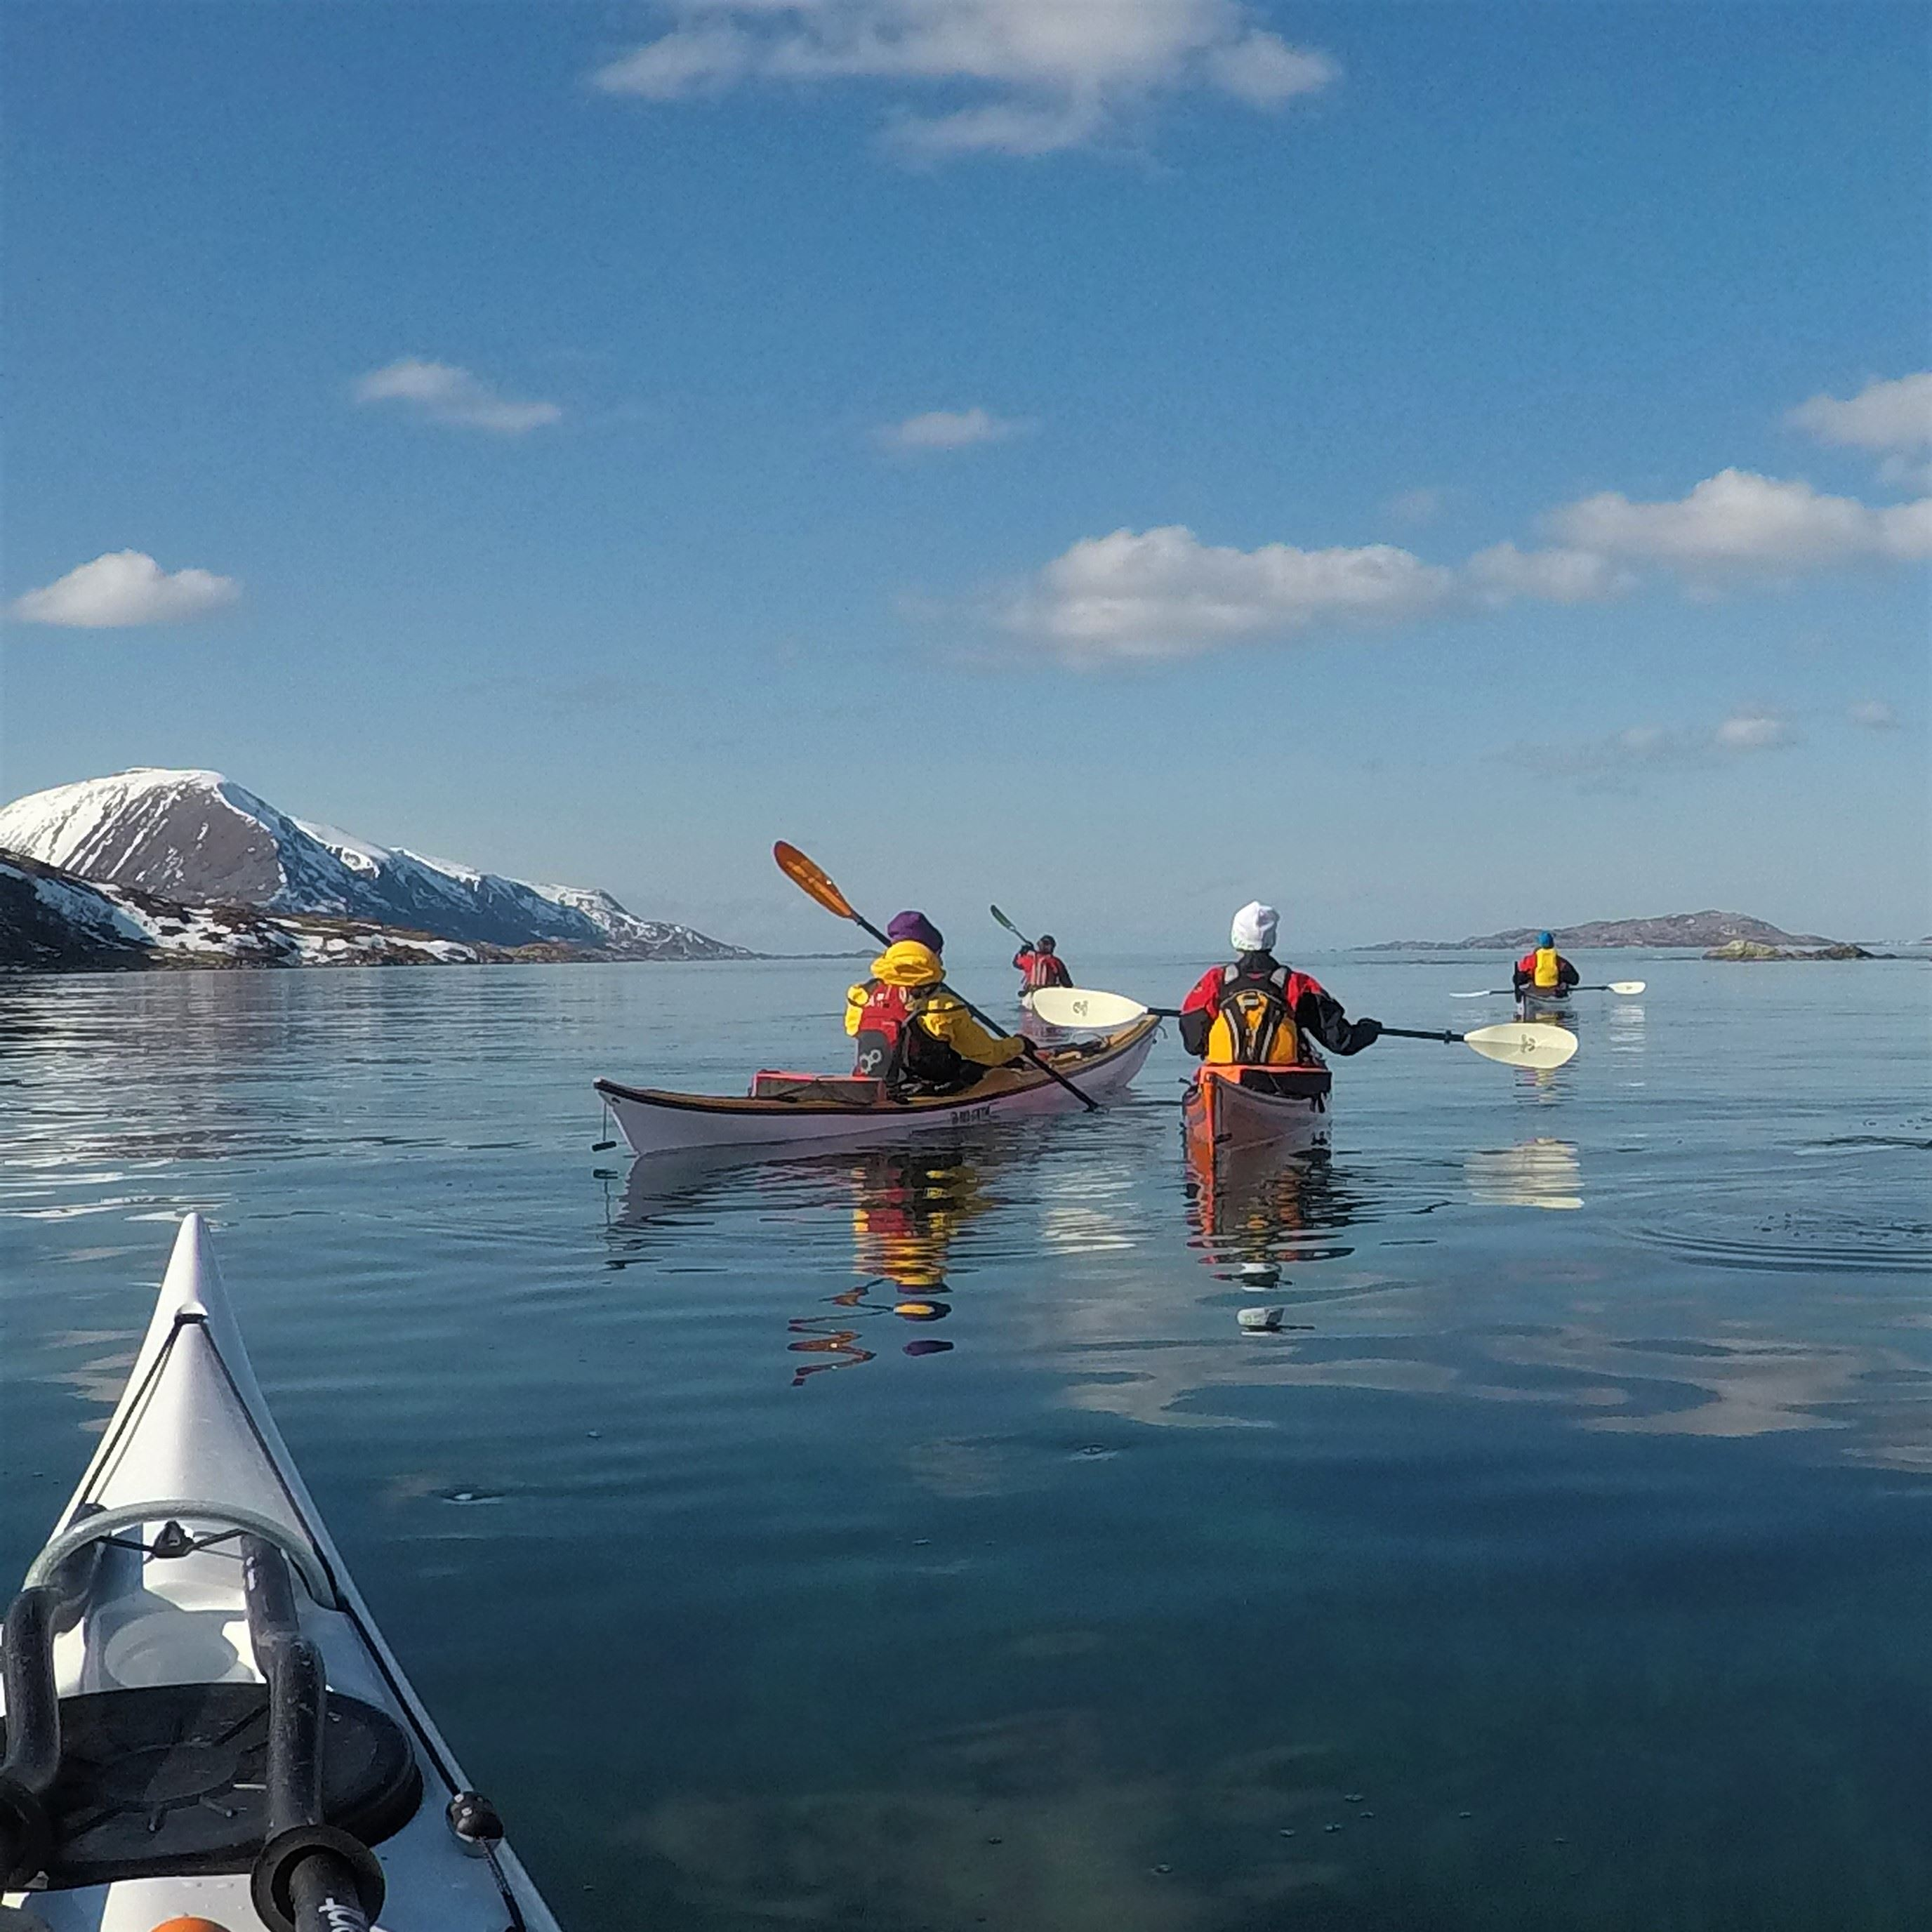 2 Day Arctic Camp with Winter Kayaking - Elements Arctic Camp